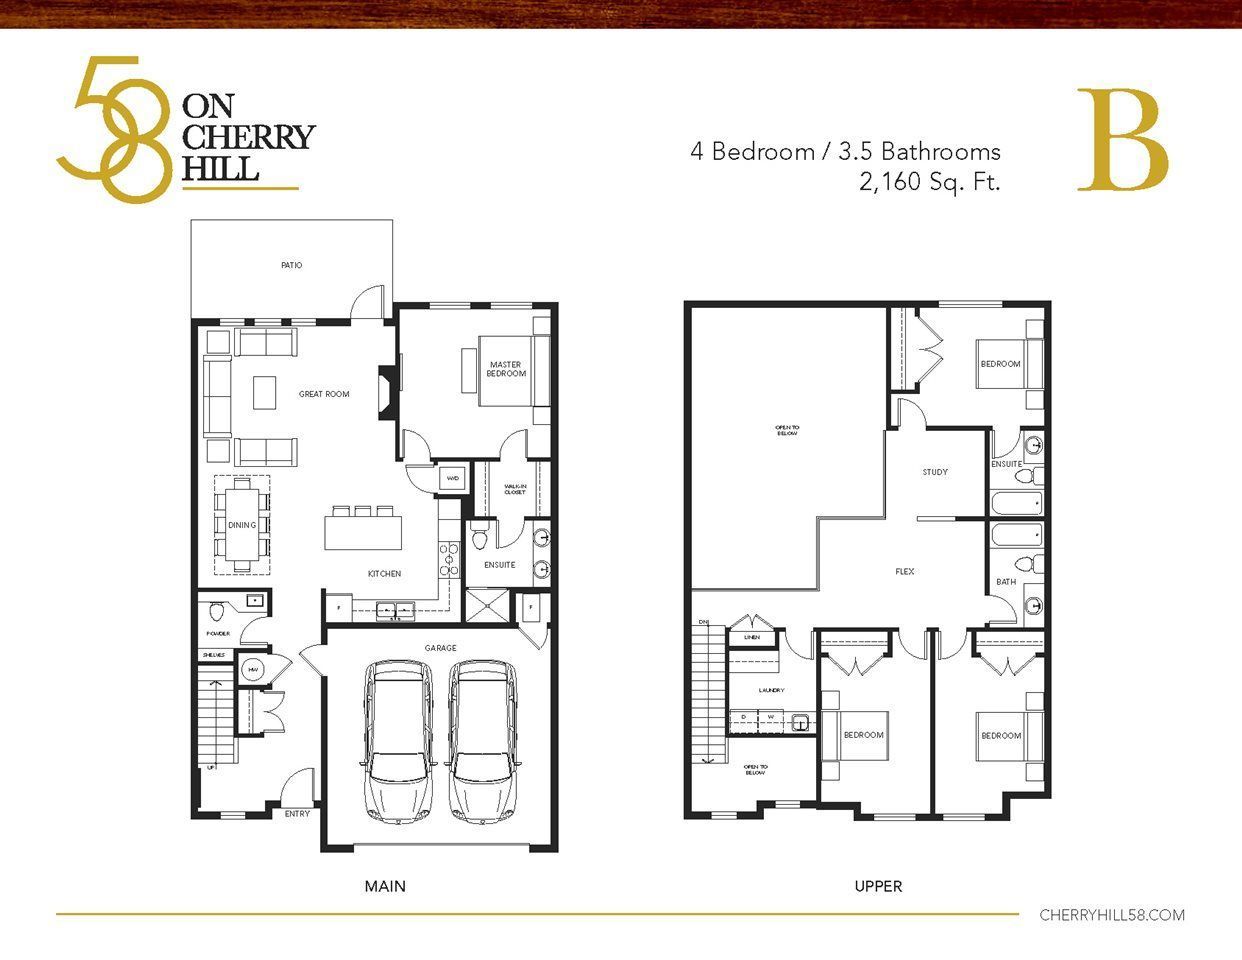 """Photo 8: Photos: 32 33209 CHERRY Avenue in Mission: Mission BC Townhouse for sale in """"58 on CHERRY HILL"""" : MLS®# R2248935"""